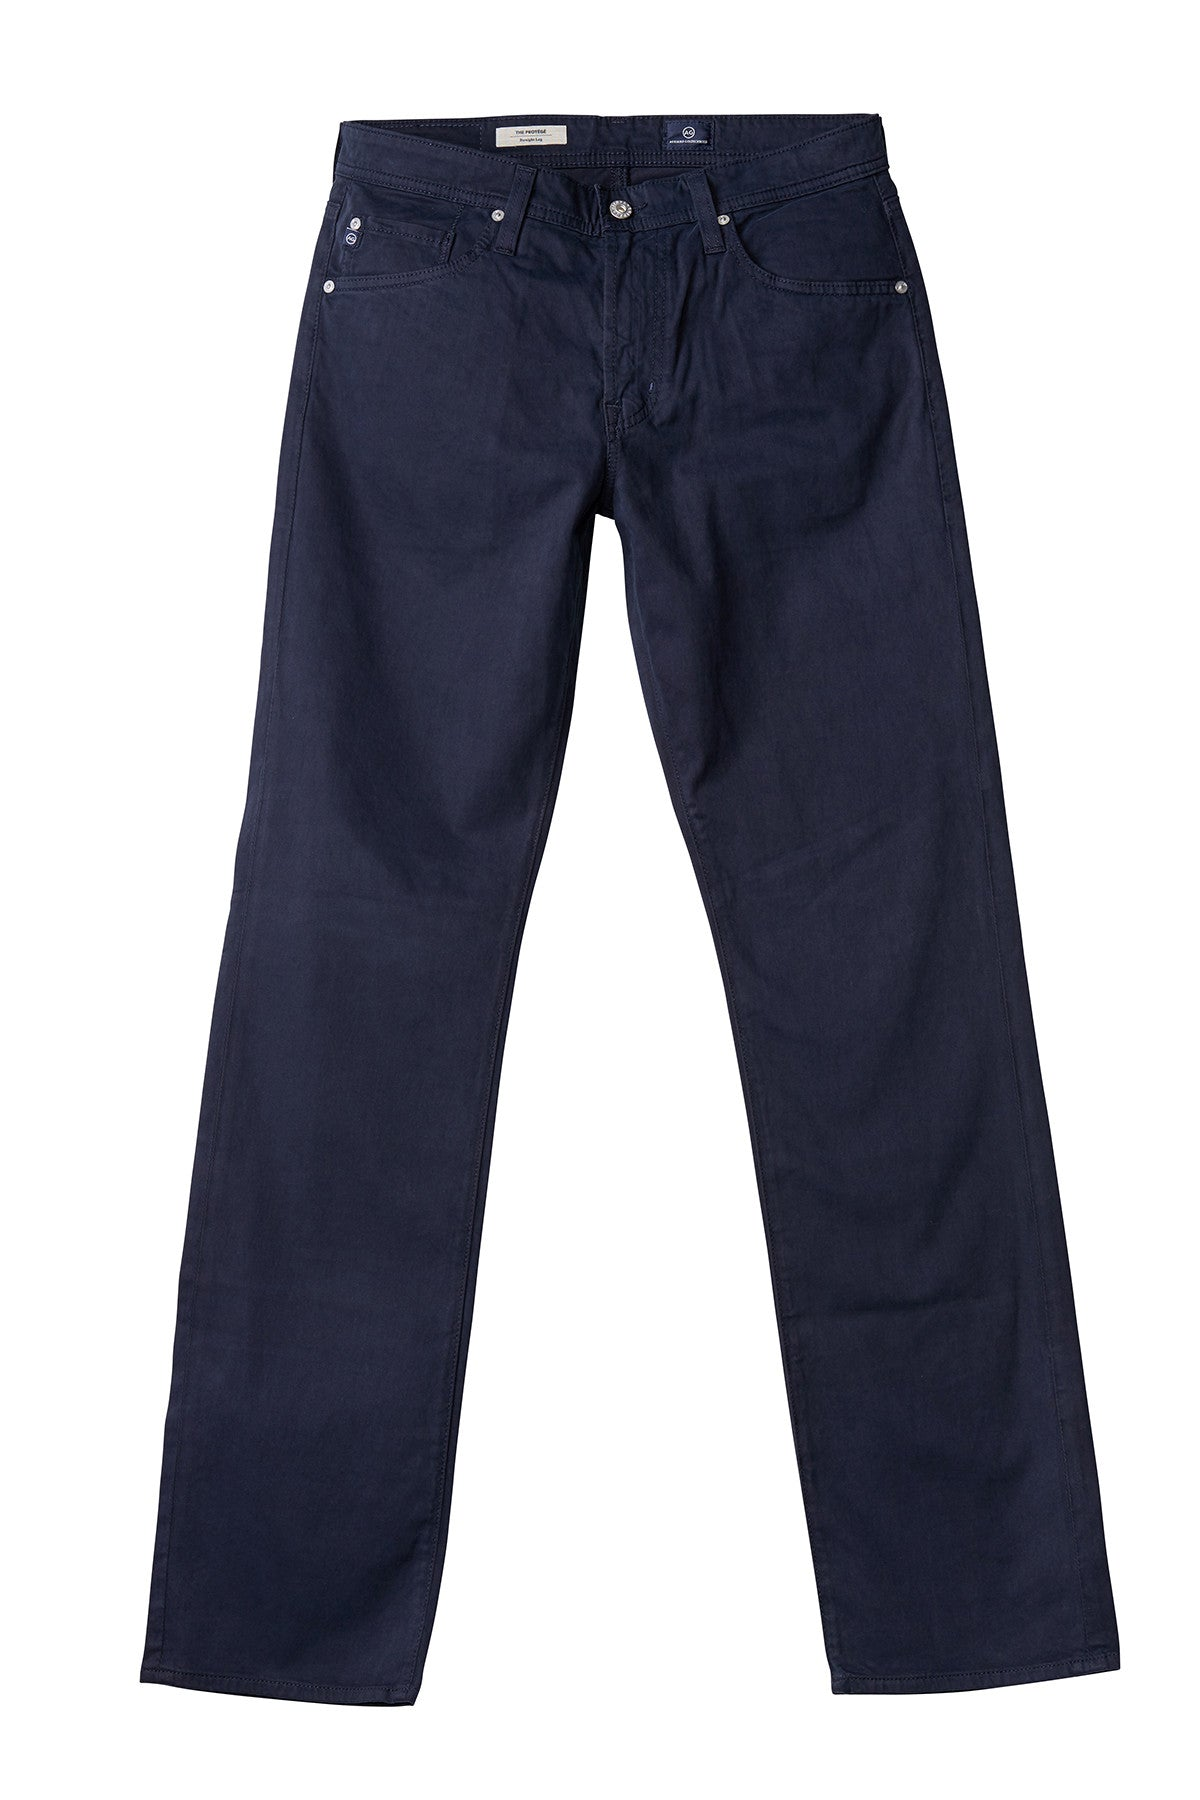 AG 'Protégé' Straight Leg Fit Pants in Sueded Sateen Navy